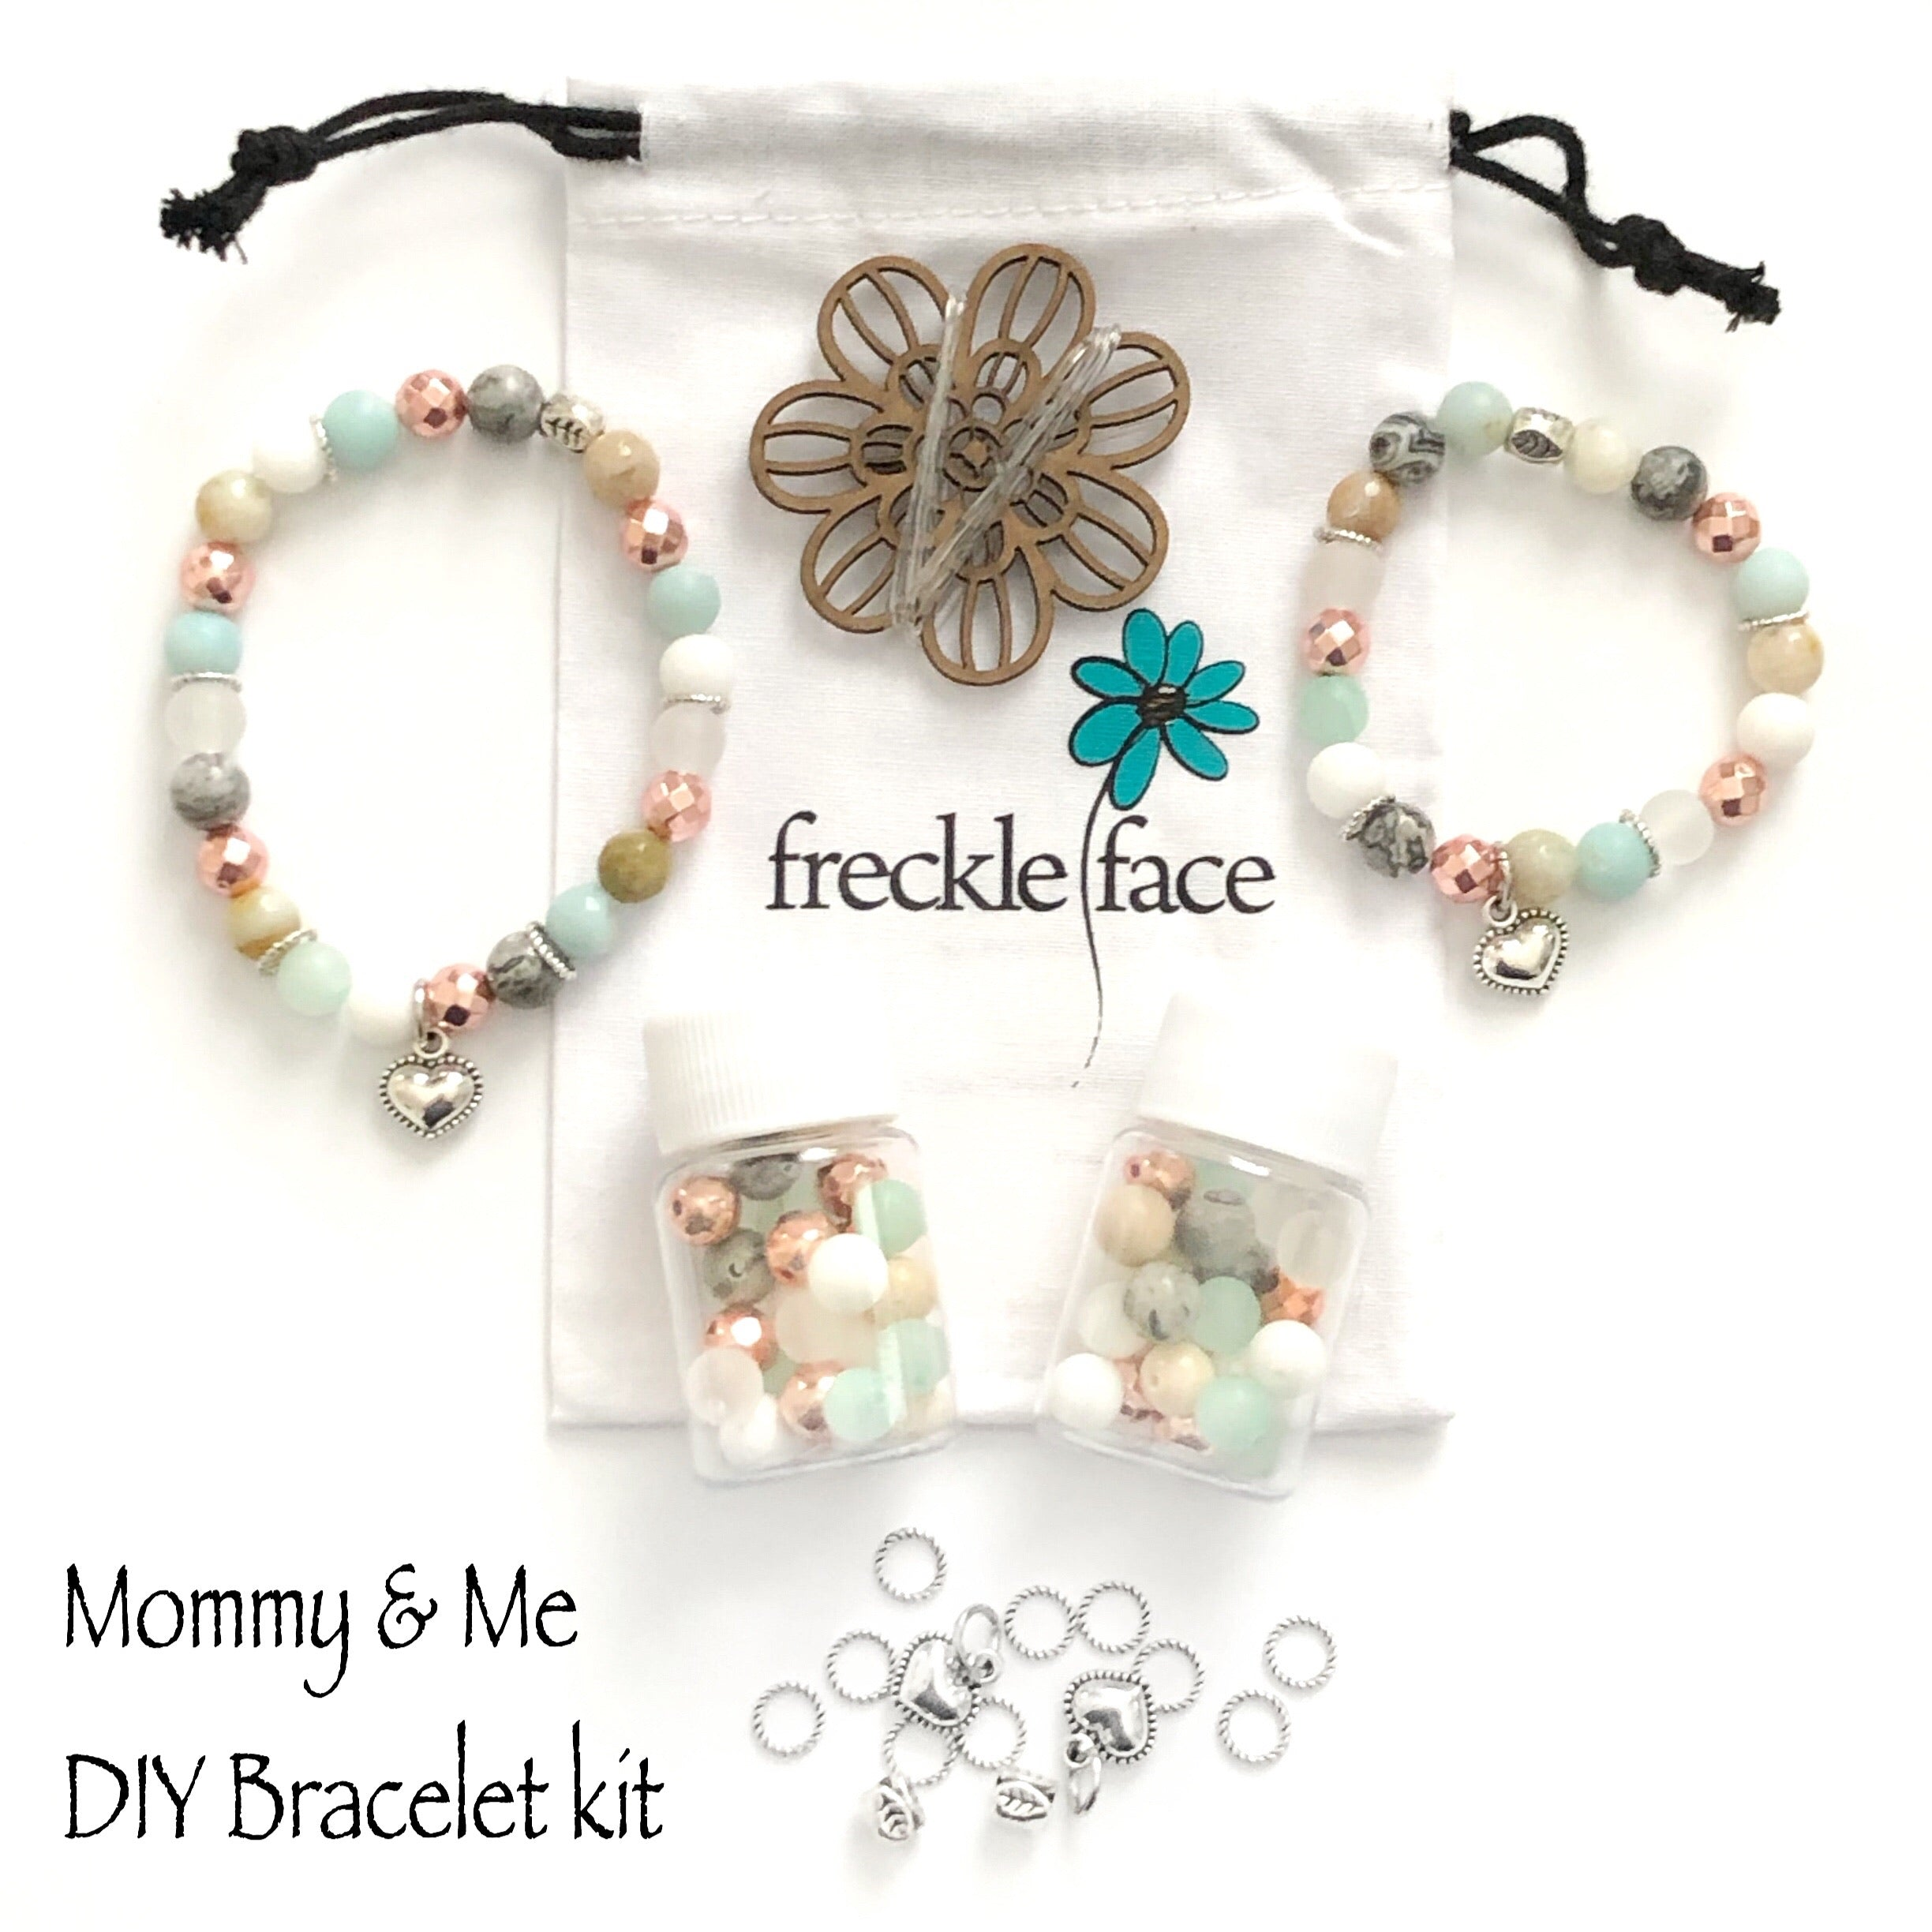 Mommy and Me DIY Bracelet Kit - 8mm beads with charms